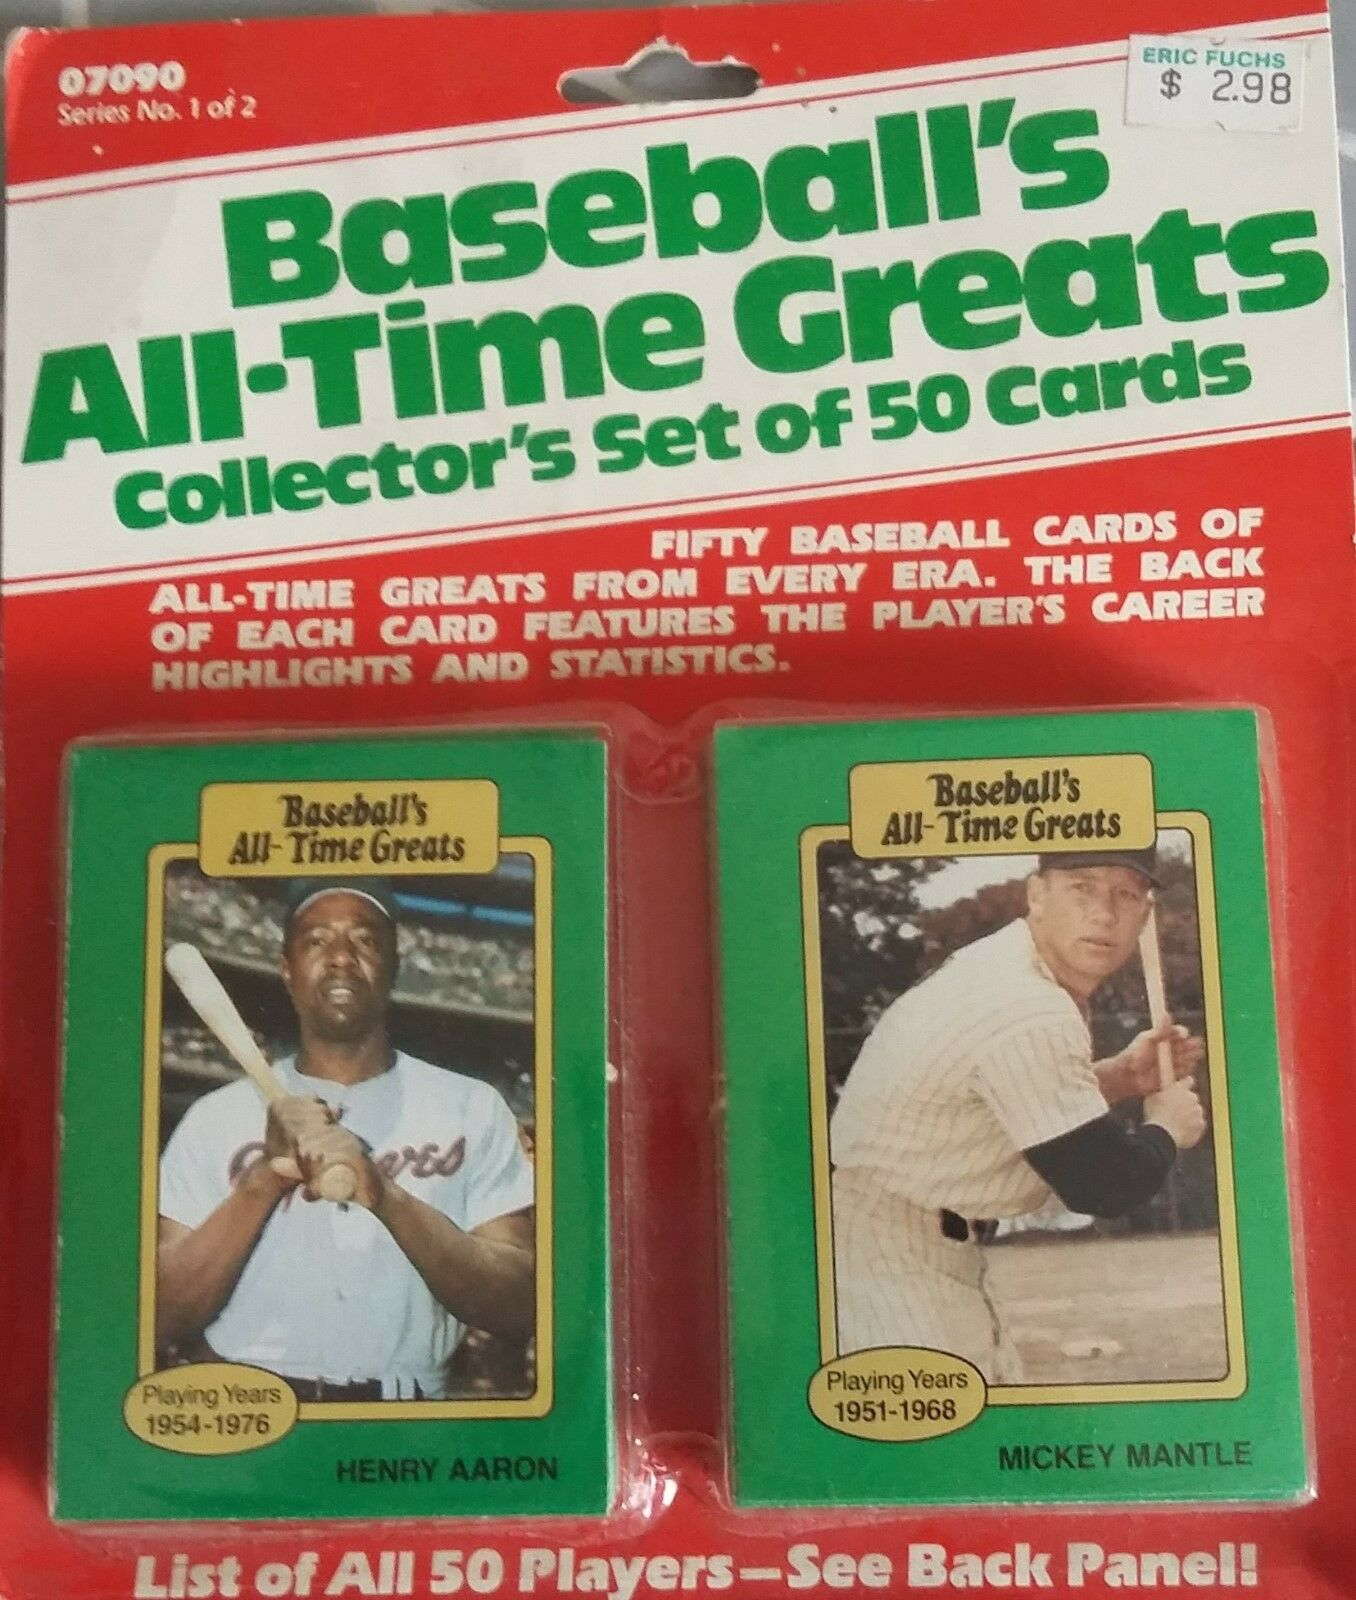 Baseballs All Time Greats Collector Set Of 50 Cards 09070 Vintage